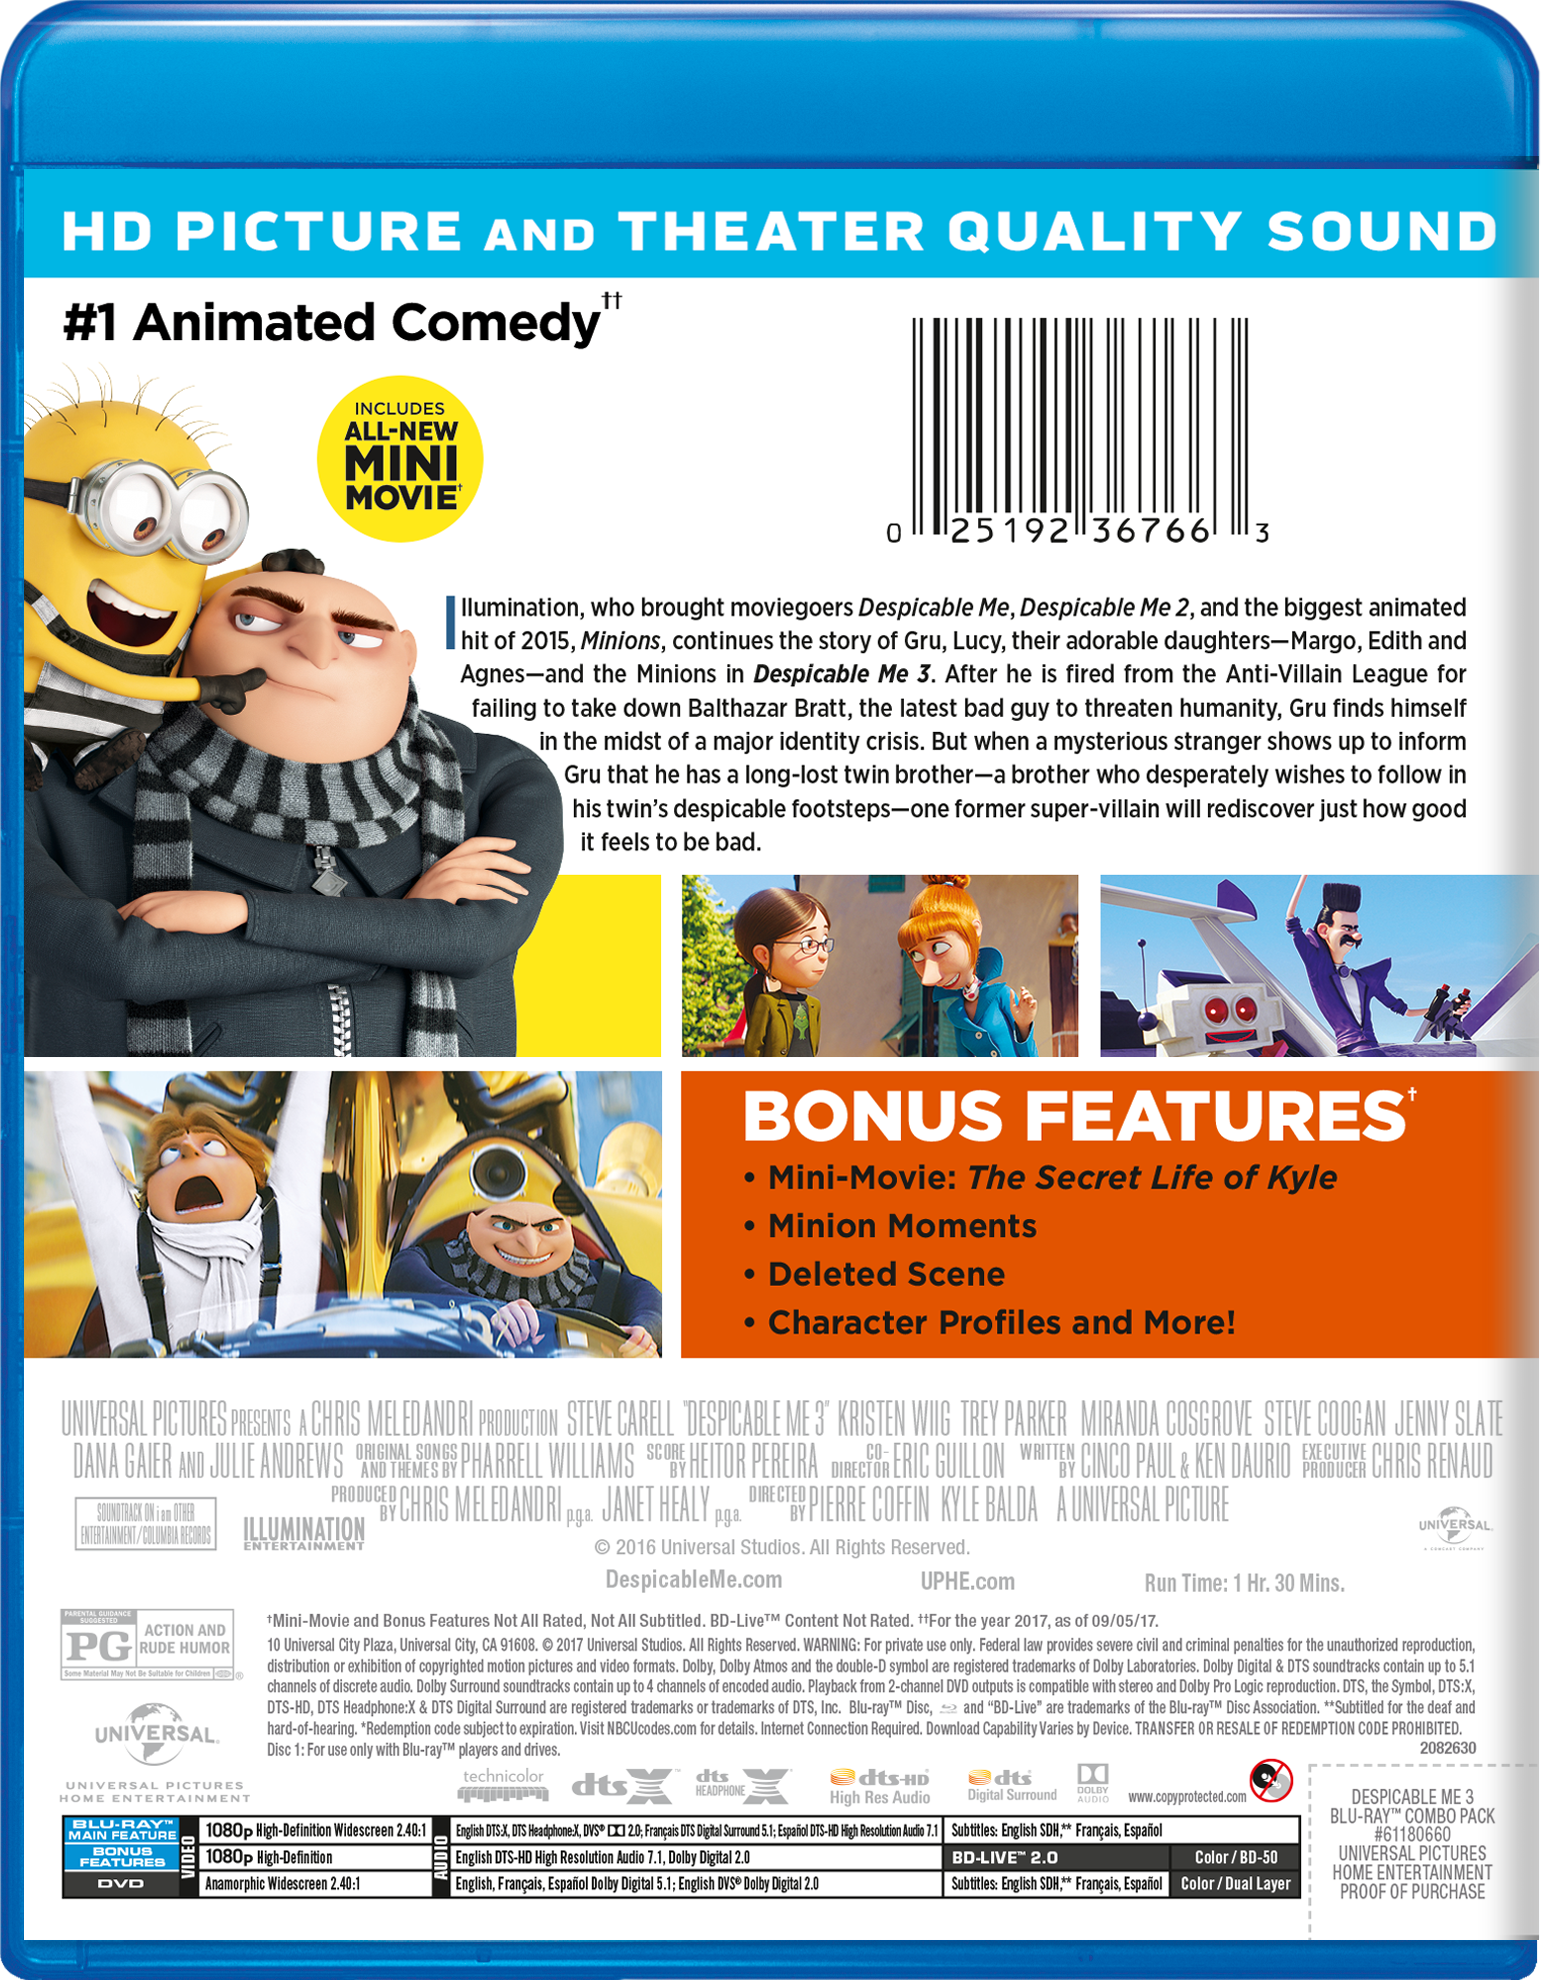 Despicable Me 3 | Movie Page | DVD, Blu-ray, Digital HD, On Demand